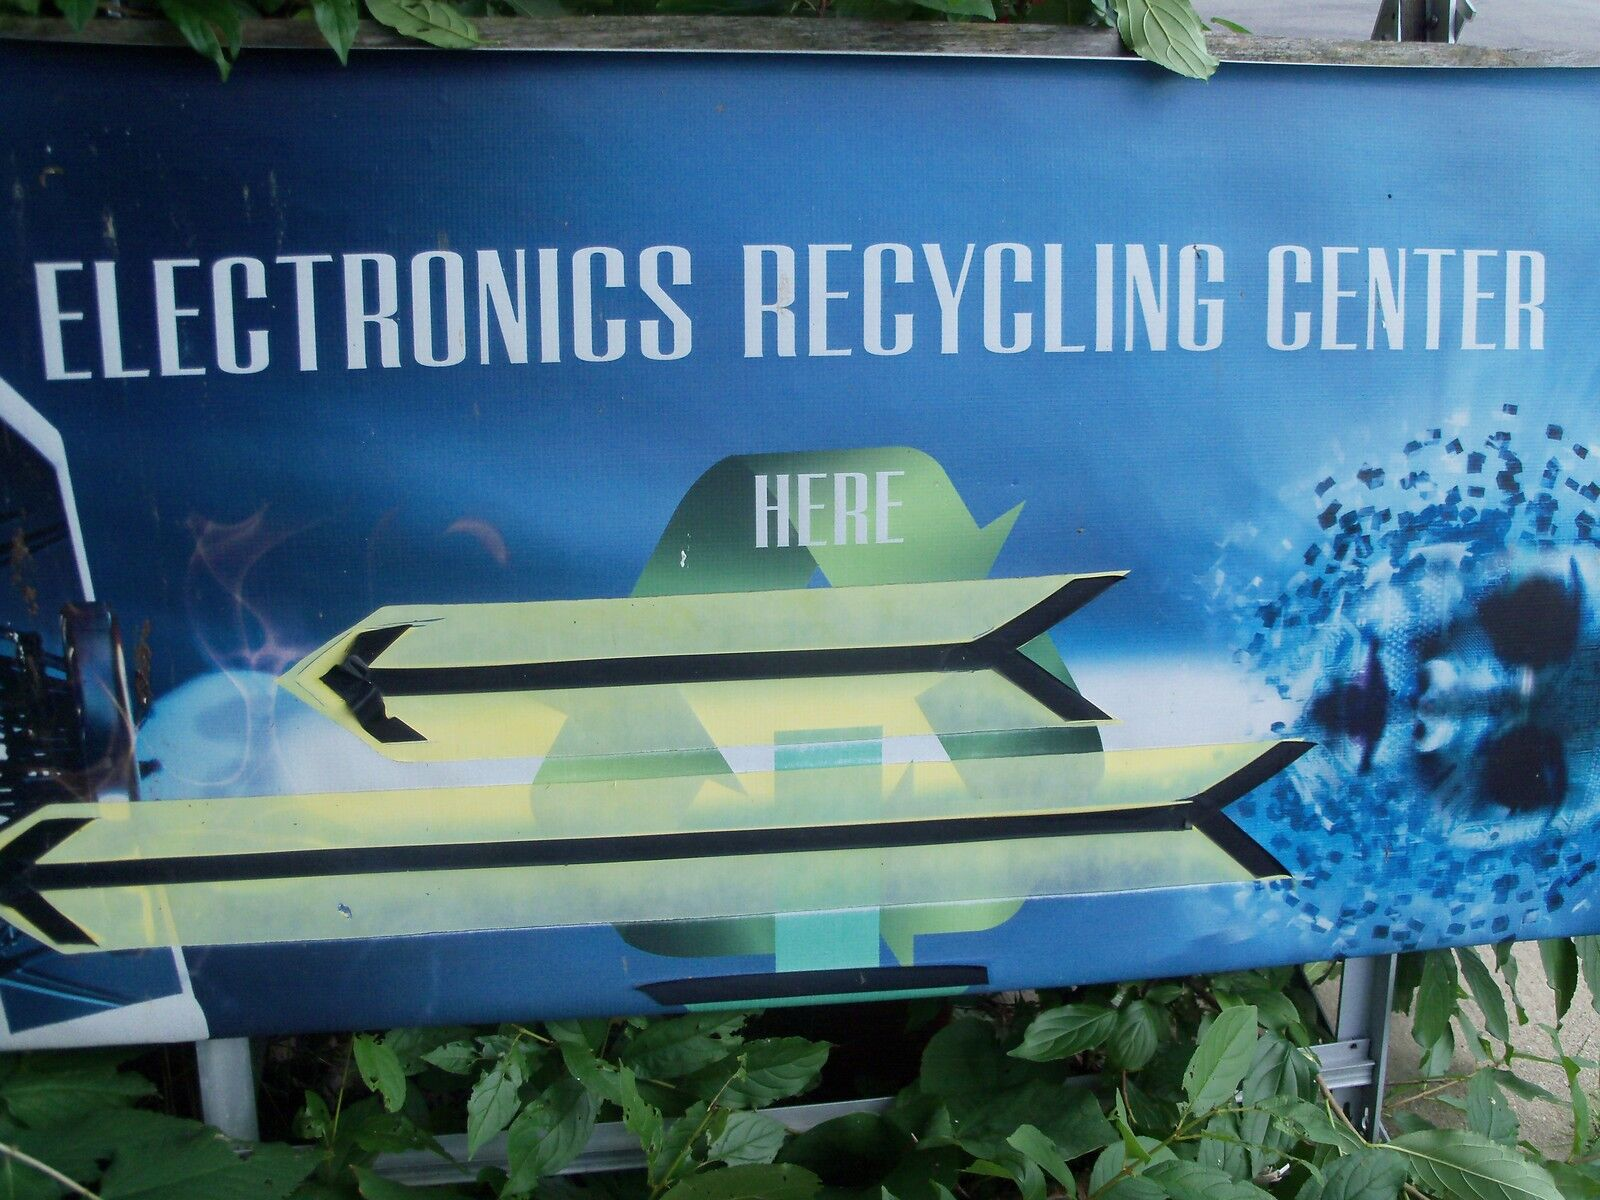 Electronic Recycling Center